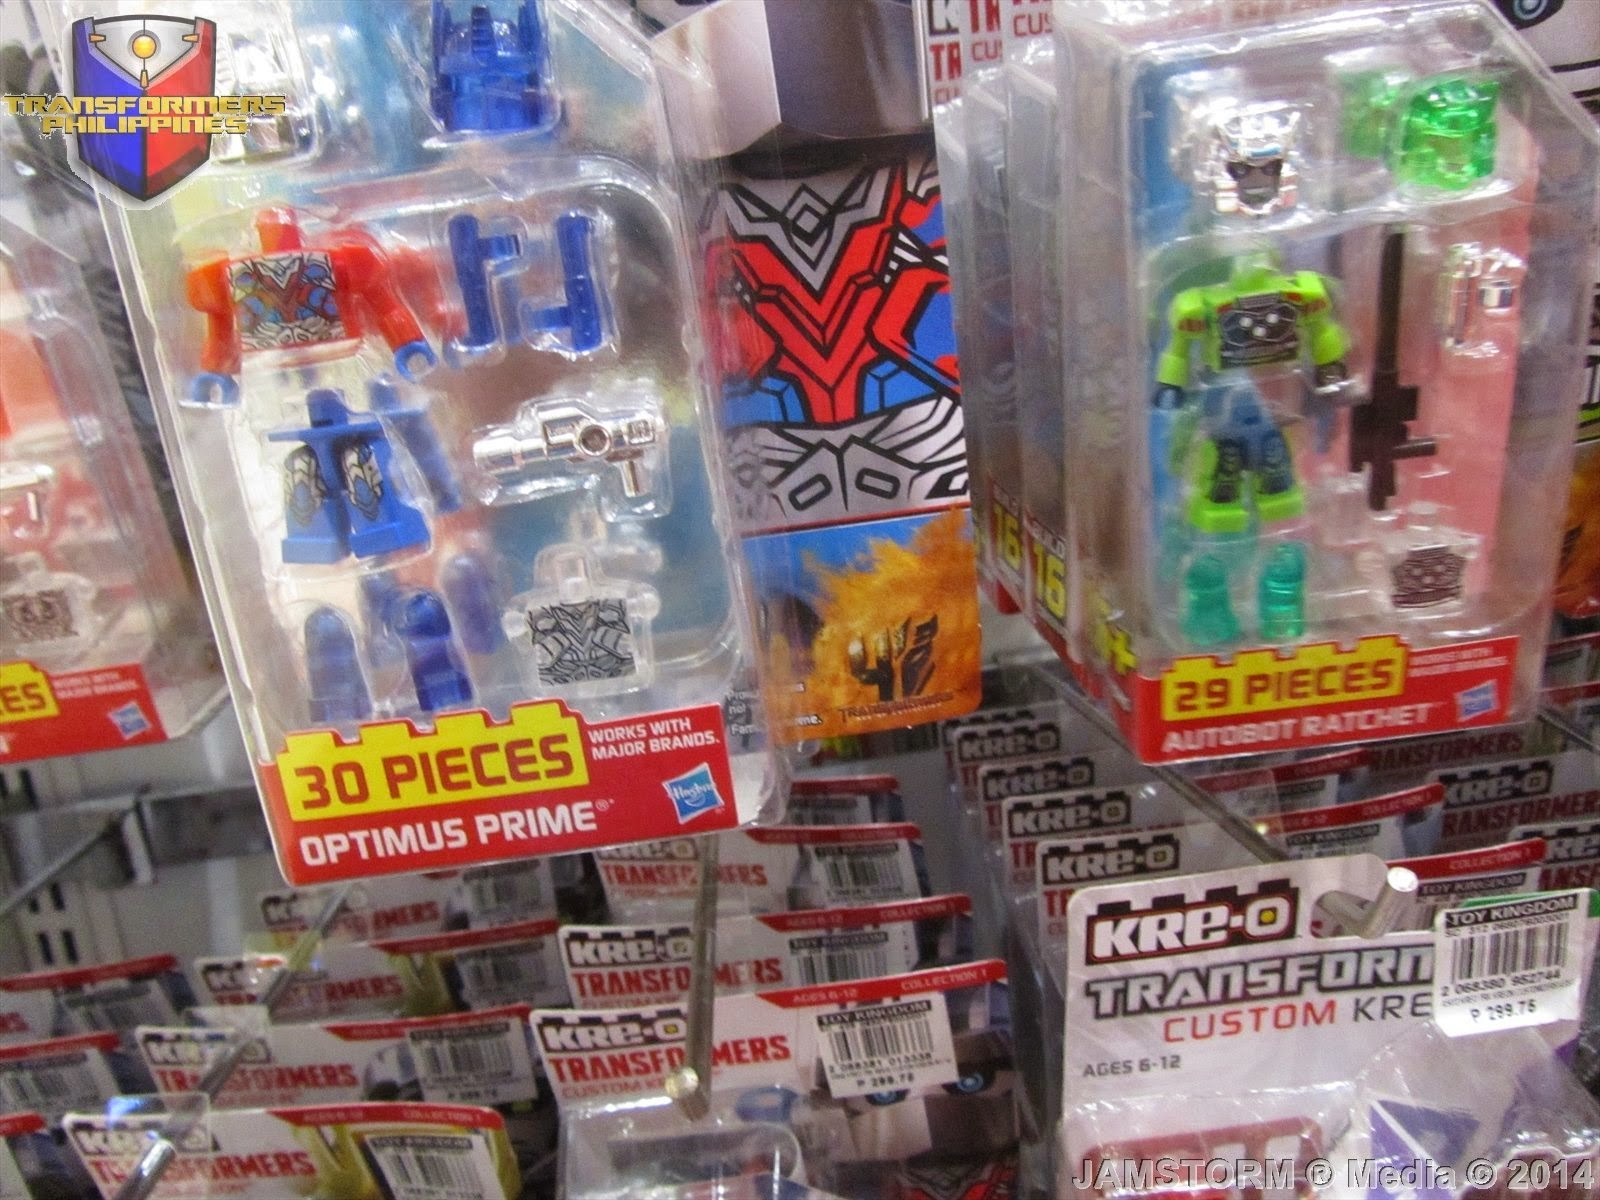 TransFormers Philippines New Transformers Toys Launched But No Movie